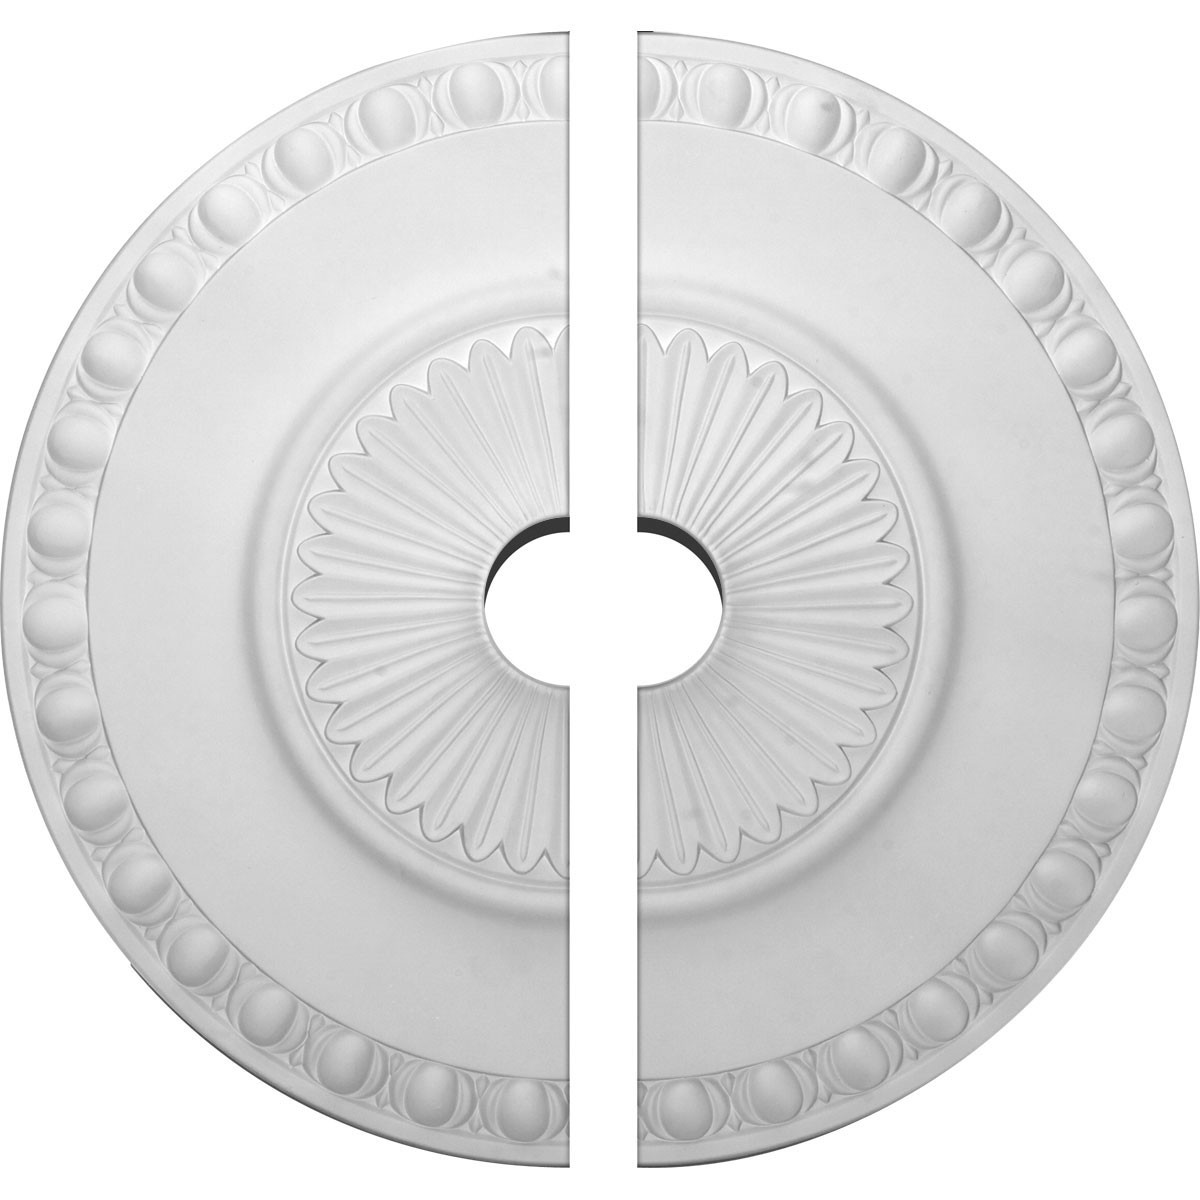 """EM-CM23LY2-03500 - 23 1/2""""OD x 3 1/2""""ID x 3 1/4""""P Lyon Ceiling Medallion, Two Piece (Fits Canopies up to 3 5/8"""")"""